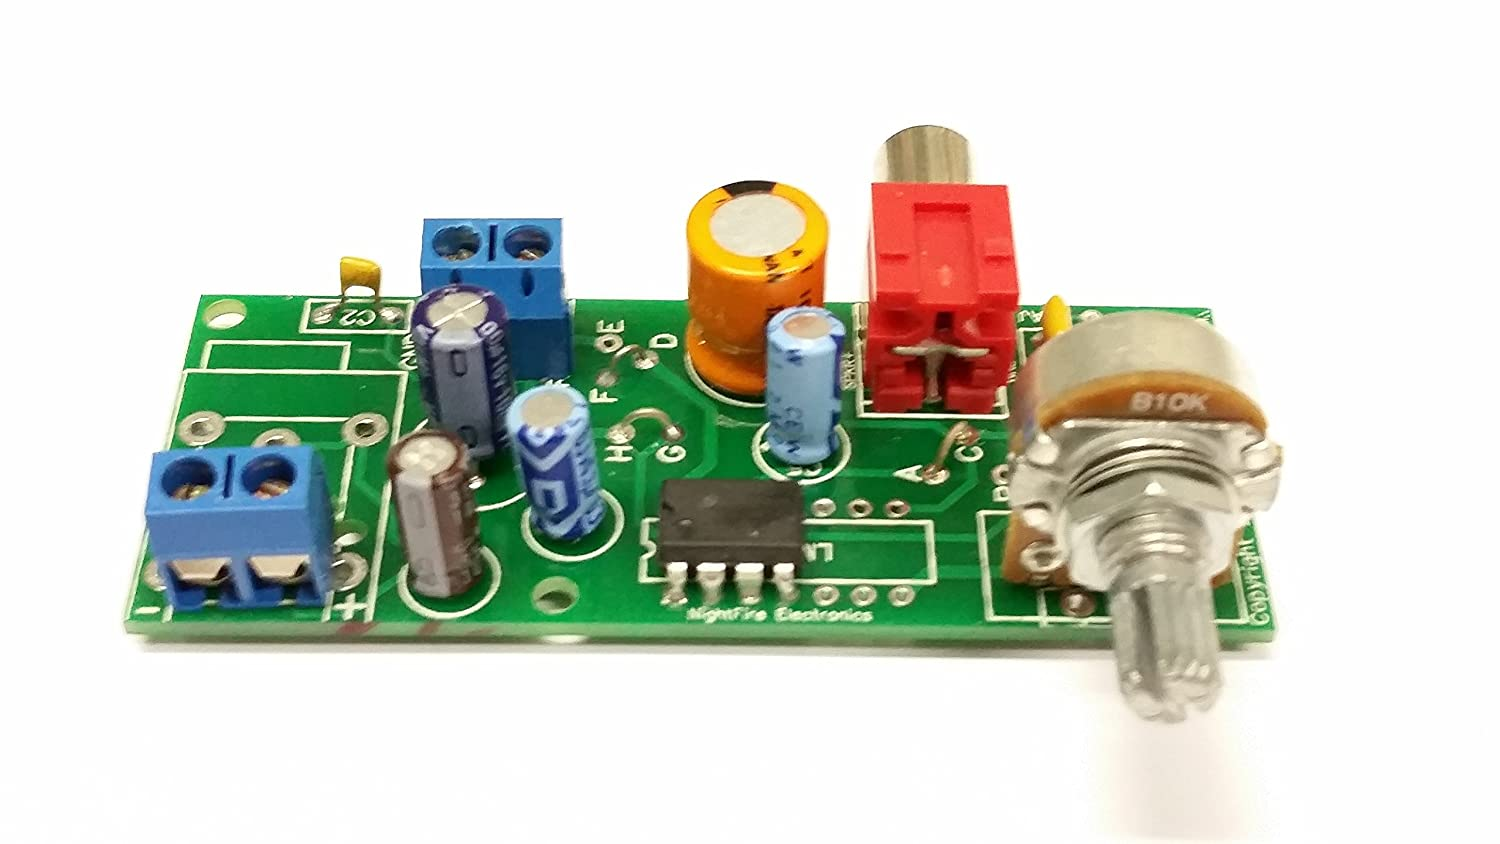 Lm380n 8 Audio Amplifier Kit 2 Pin In Rca Out Car Circuit Was Constructed With The Use Of Power Lm380 Electronics